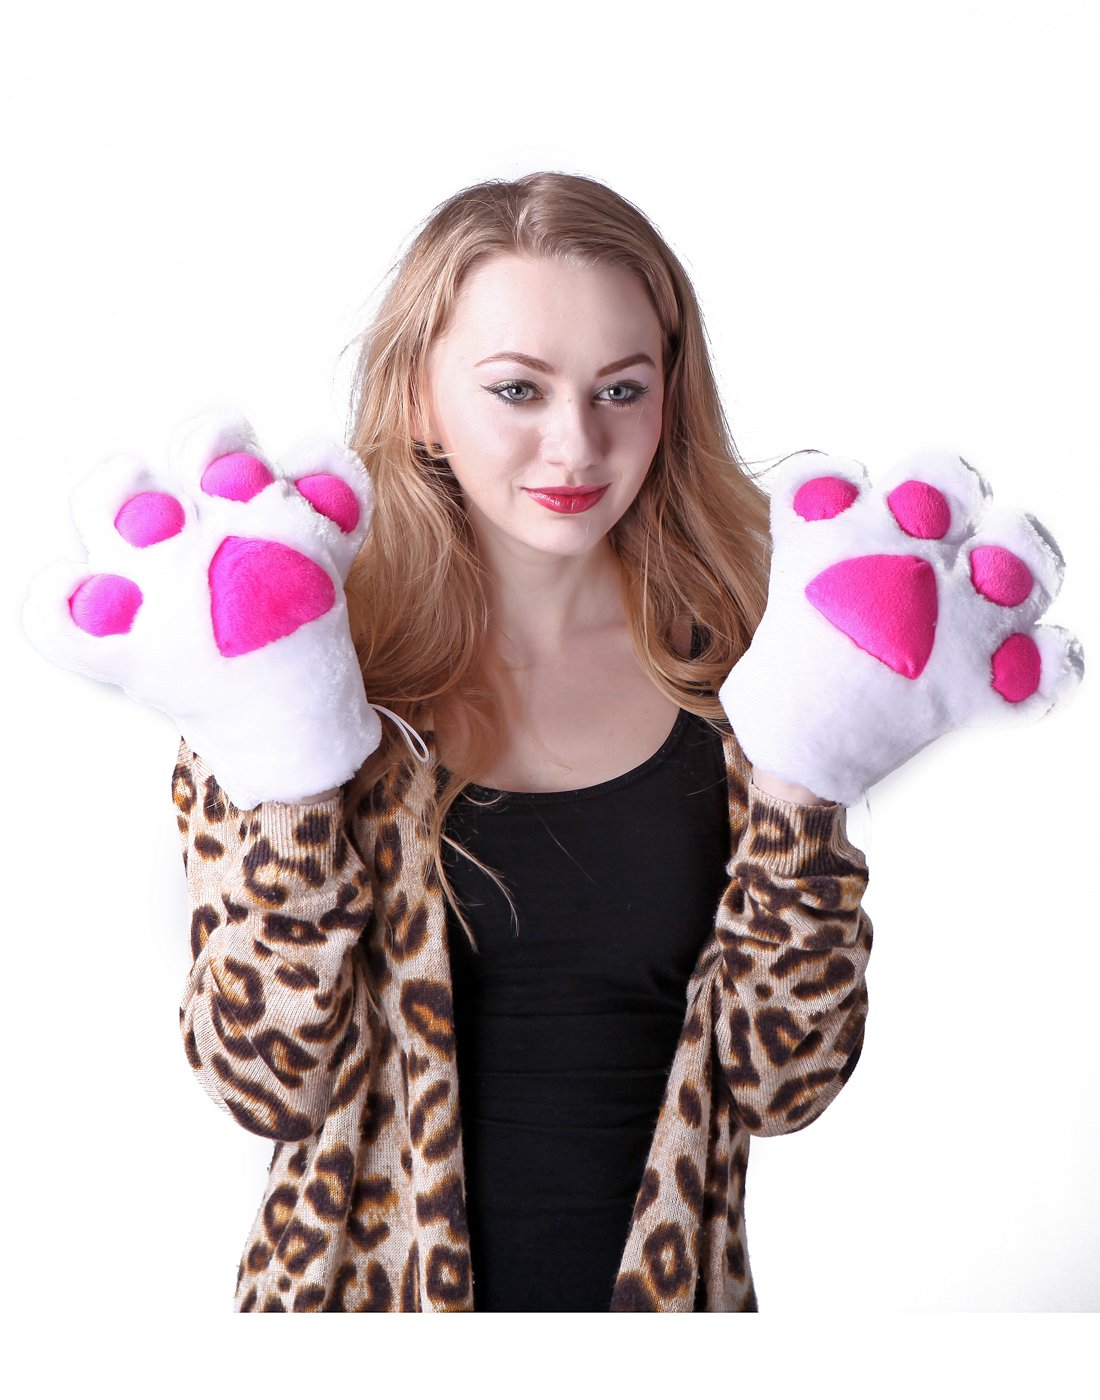 Amazon.com HDE Adult Halloween Costume Cosplay Cute Soft Kitty Cat Girl Paw Gloves (White) Toys u0026 Games  sc 1 st  Amazon.com & Amazon.com: HDE Adult Halloween Costume Cosplay Cute Soft Kitty Cat ...